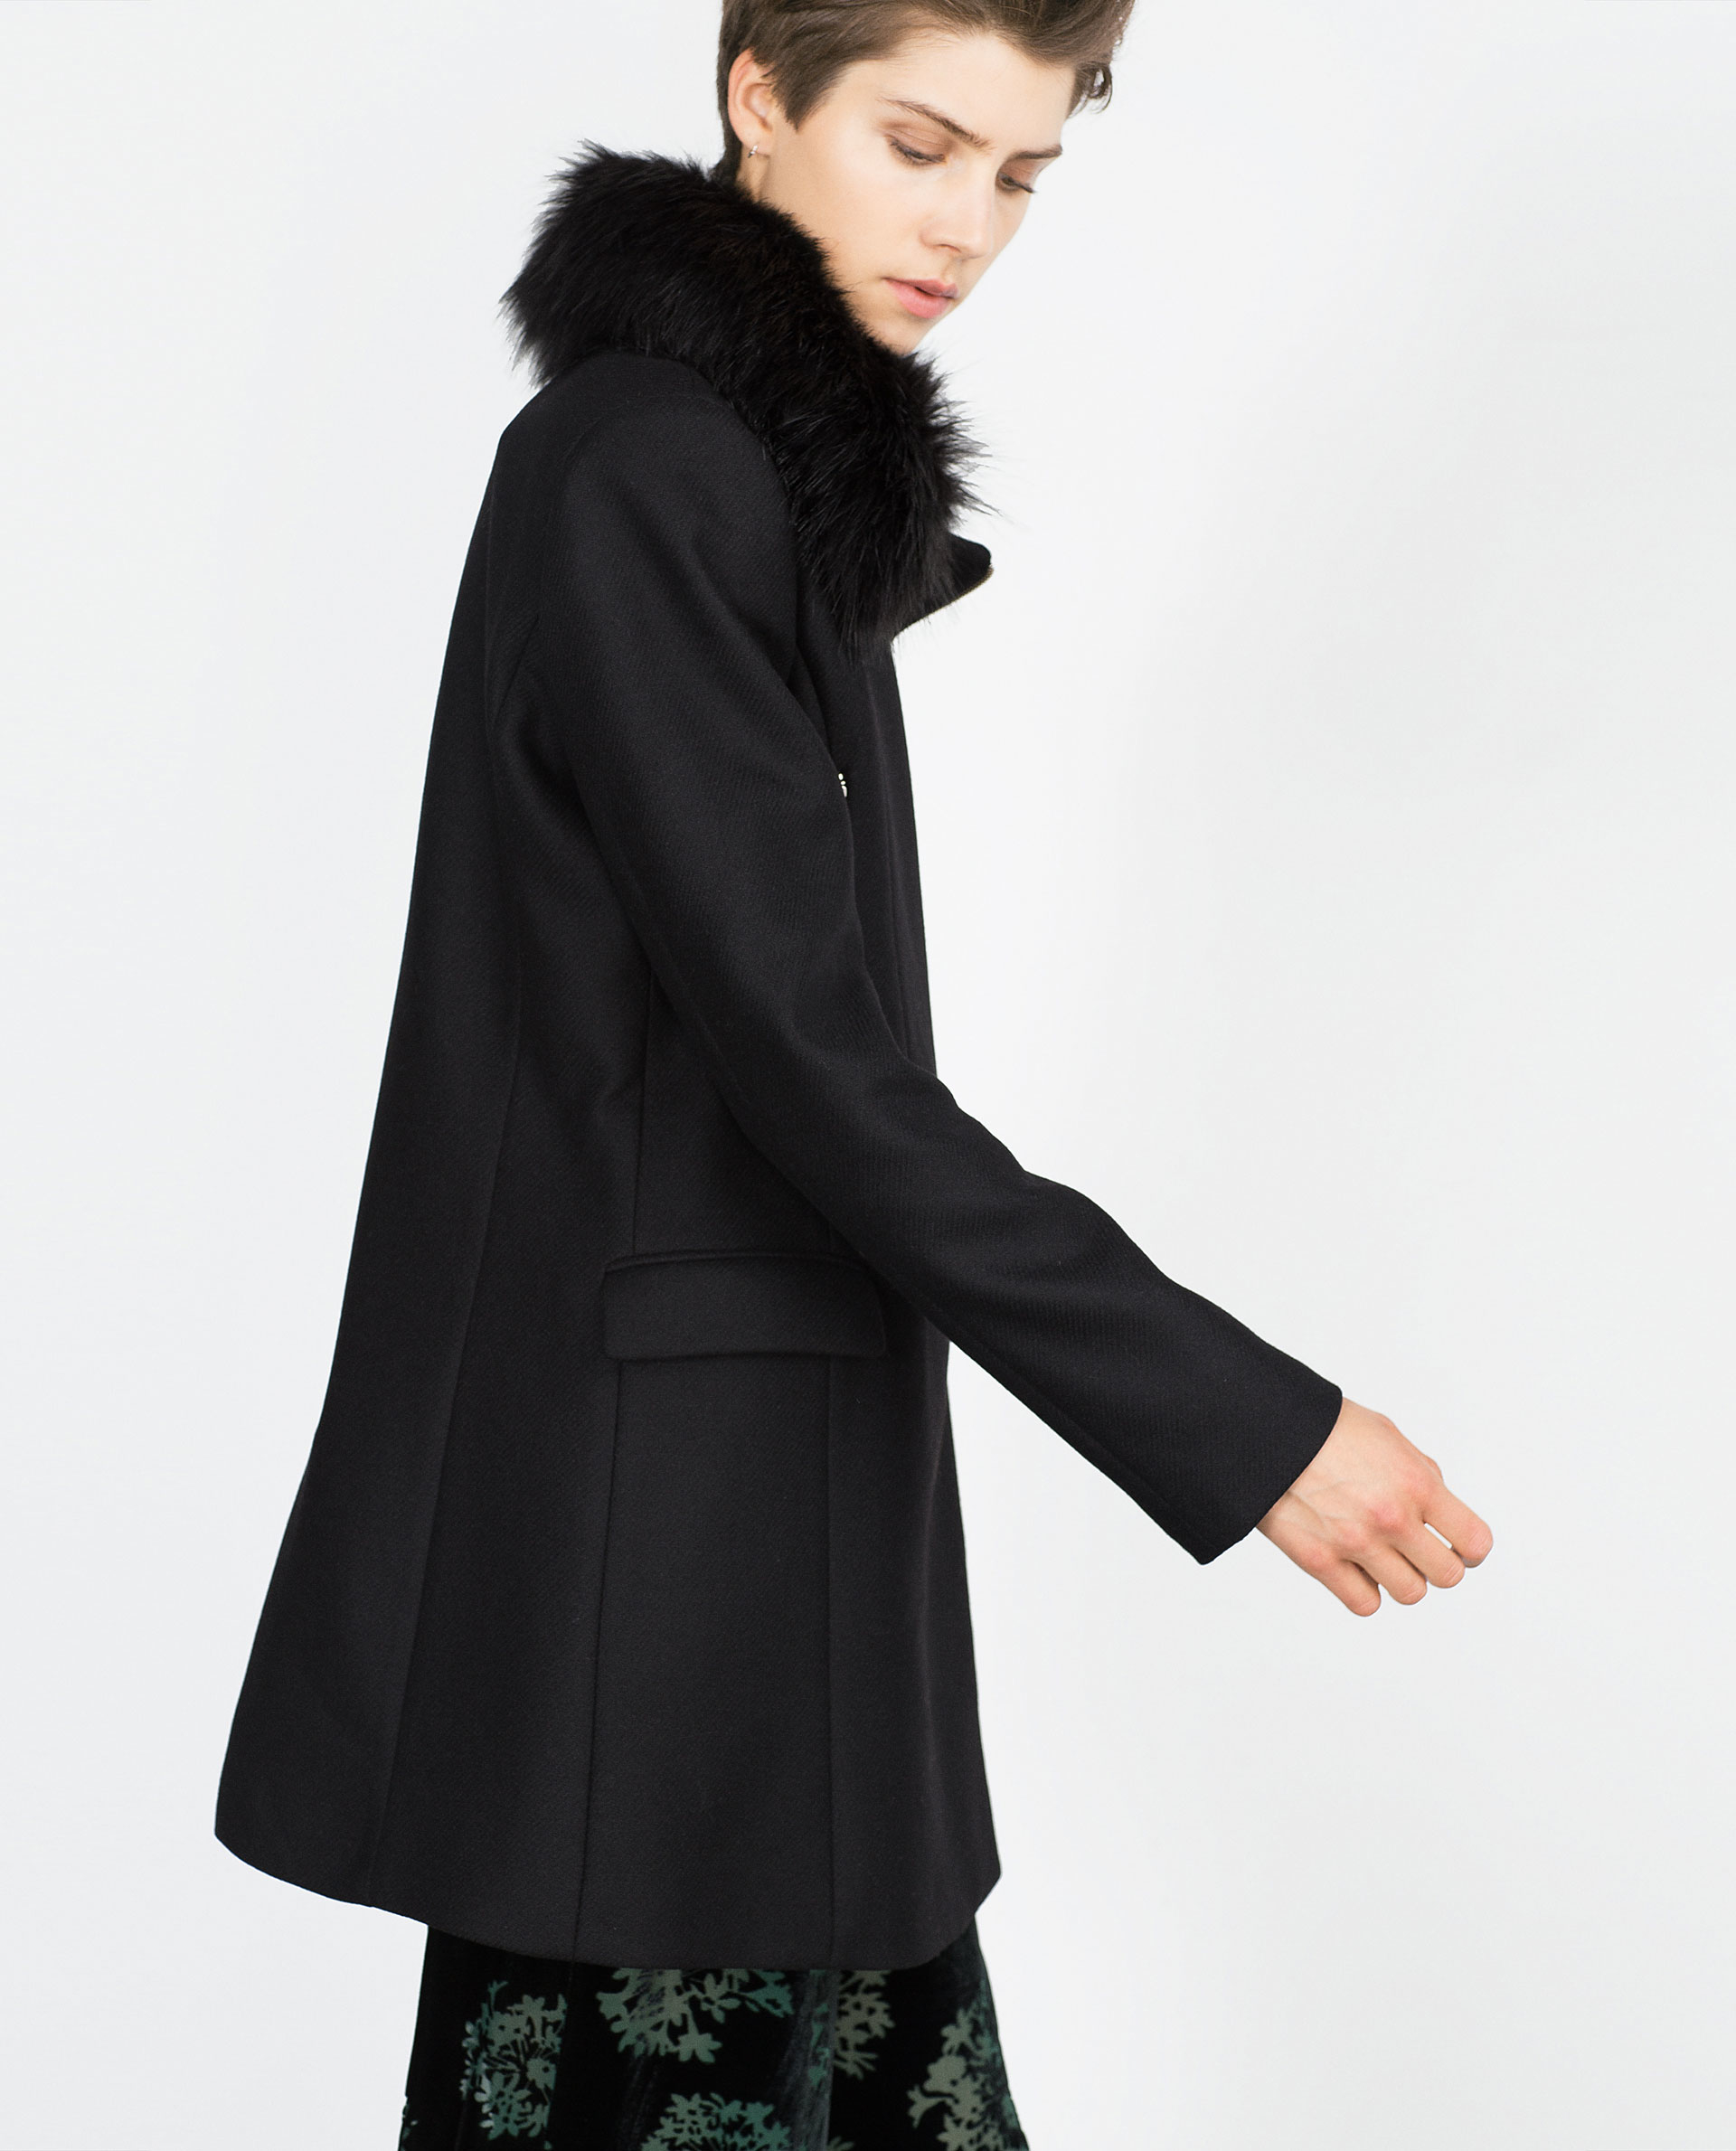 Zara Coat With Faux Fur Collar in Black | Lyst